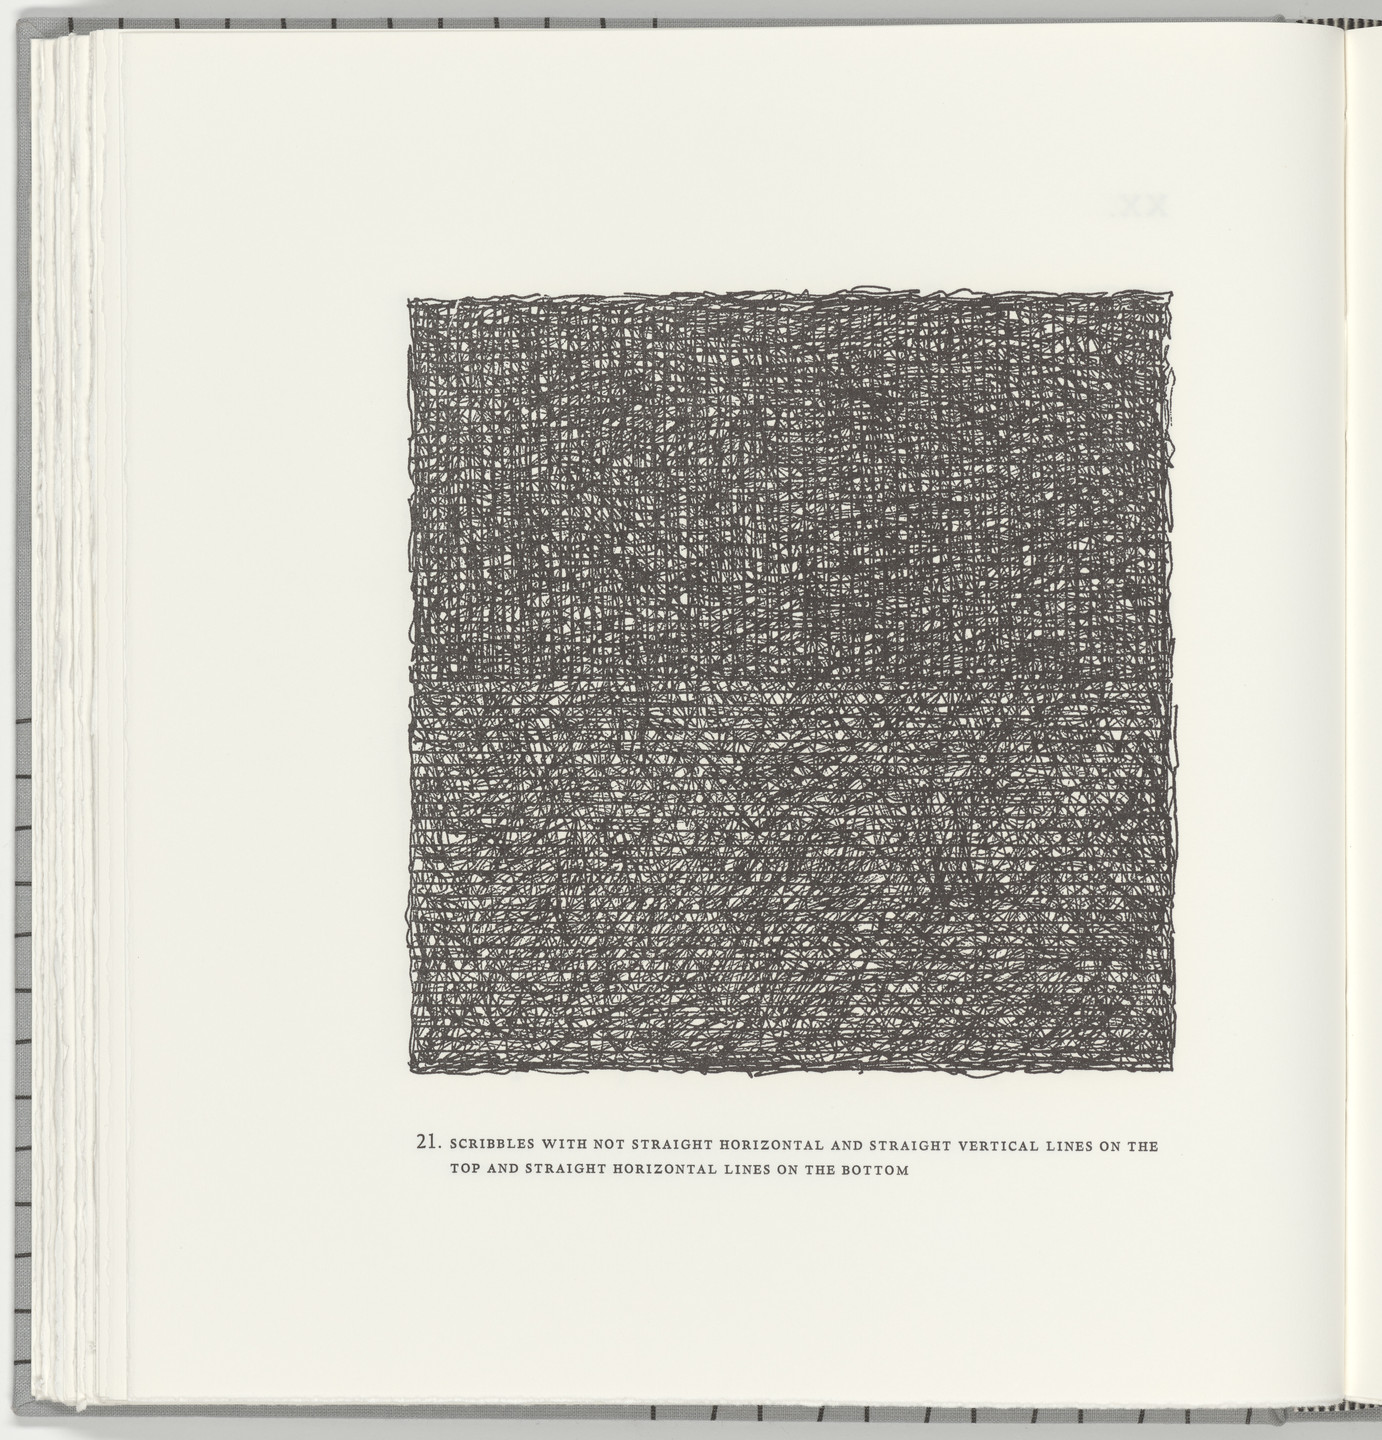 Sol LeWitt. Scribbles with Not Straight Horizontal and Straight Vertical Lines on the Top and Straight Horizontal Lines on the Bottom (plate 21) from Squarings. 2003